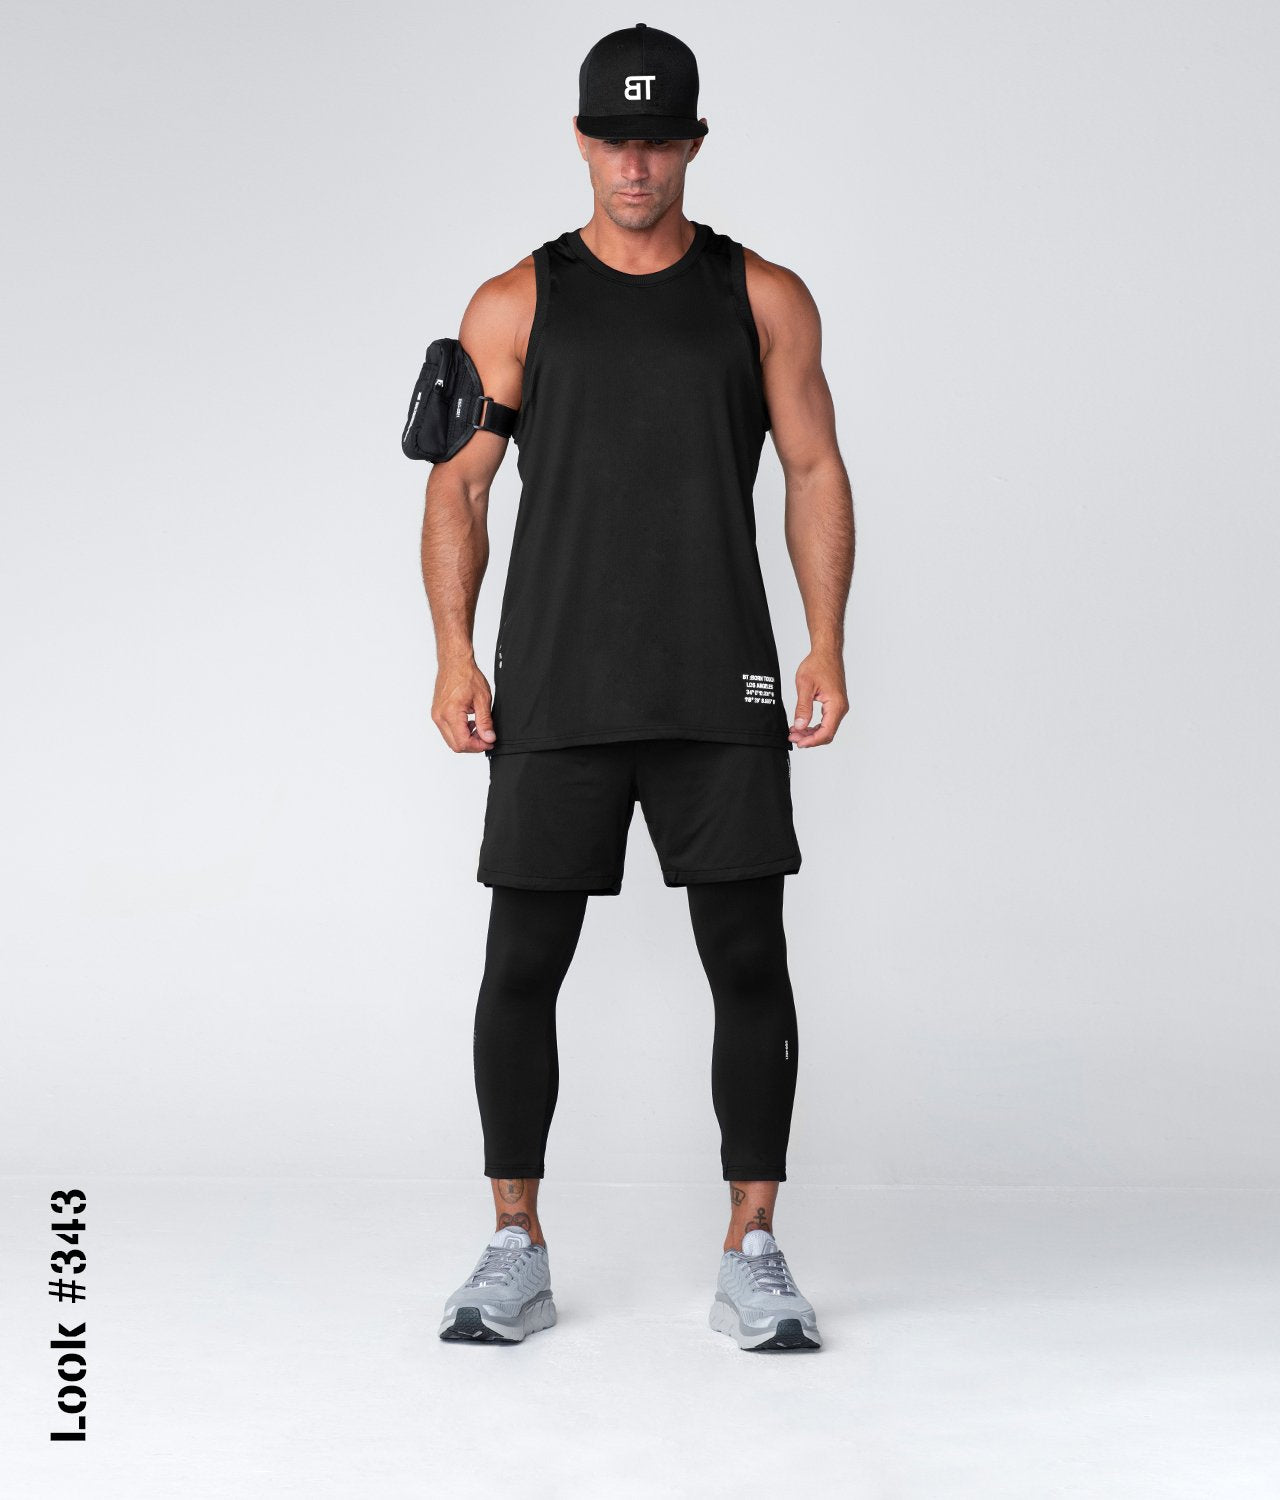 Born Tough United Kingdom Air Pro™ Black Fitted Moisture-Wicking Gym Workout Tank Top for Men